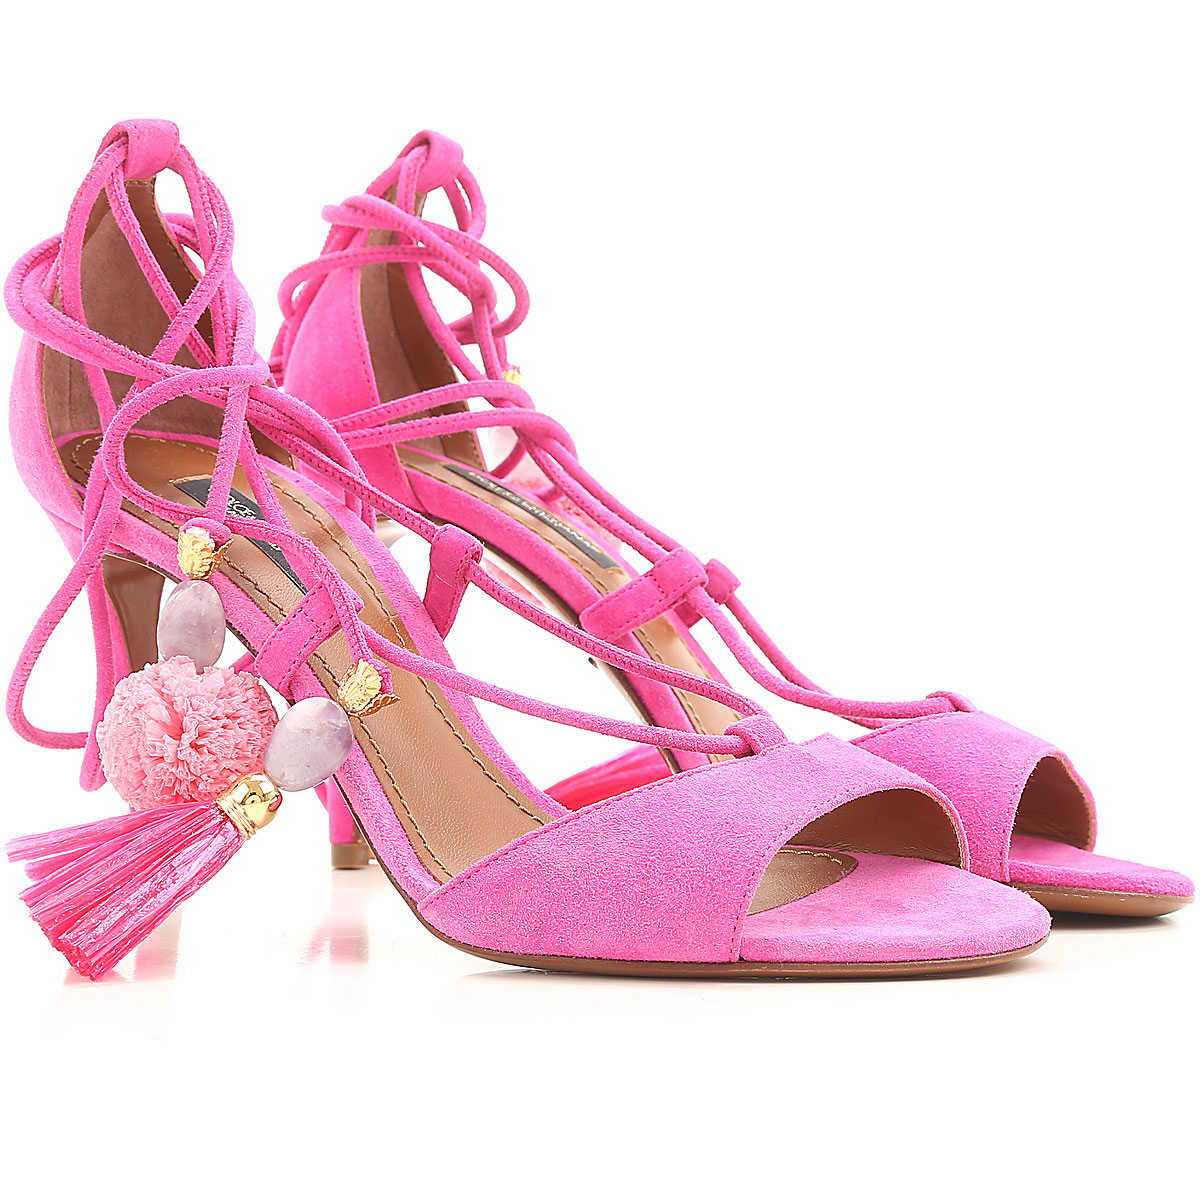 Dolce & Gabbana Sandals for Women On Sale in Outlet Fuchsia SE - GOOFASH